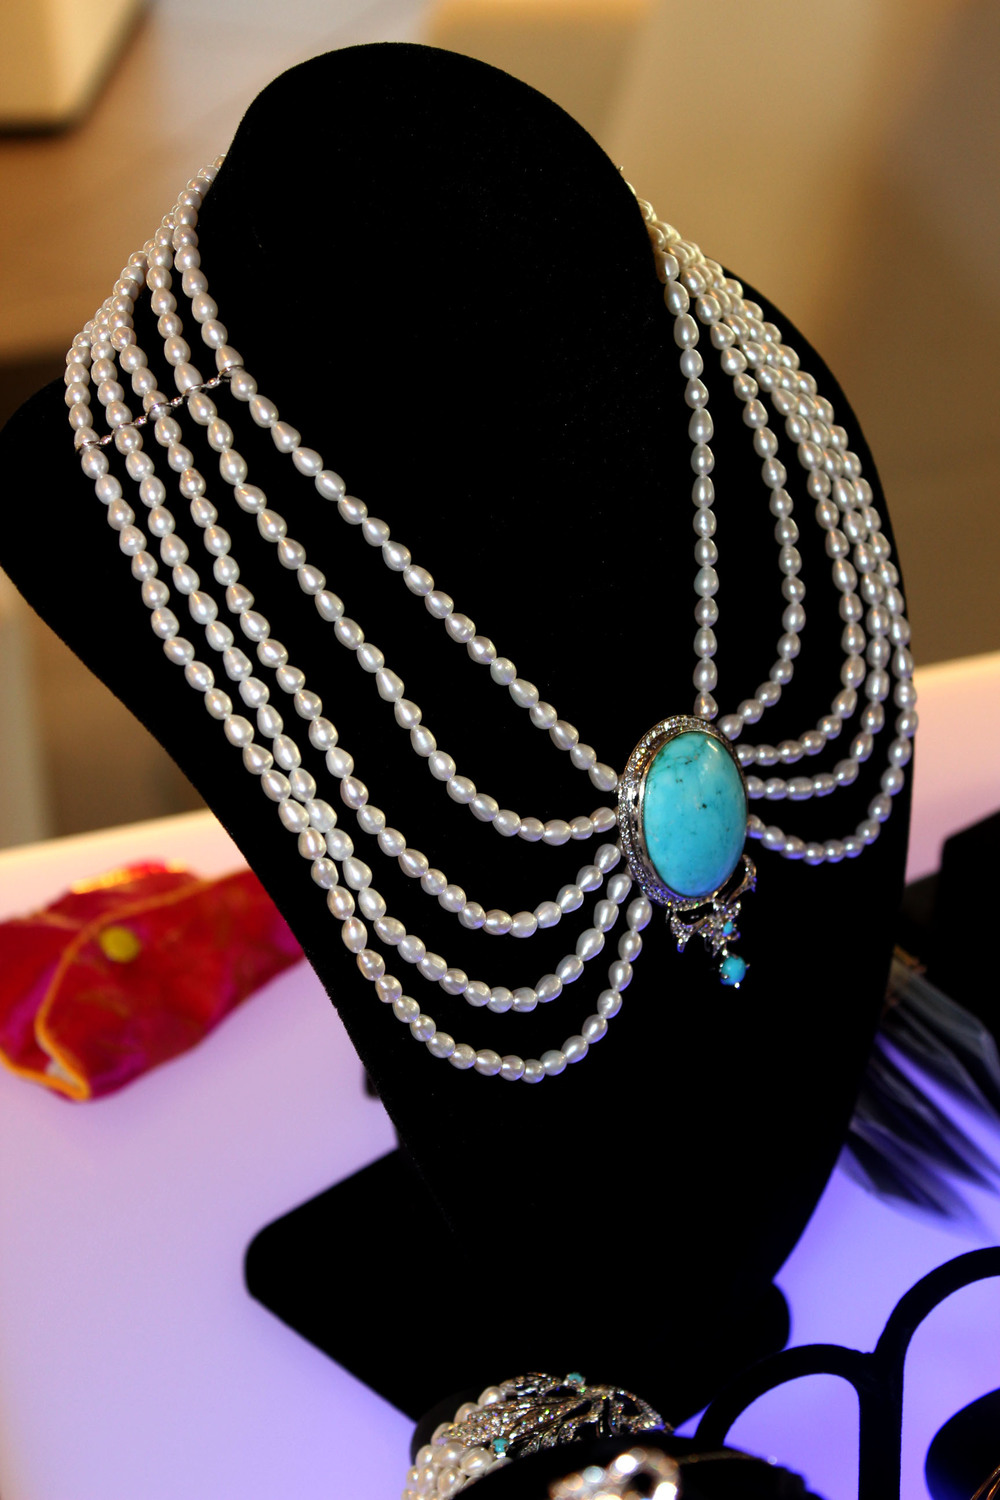 Terzari's High Couture Jewelry - Fall 2013 Collection